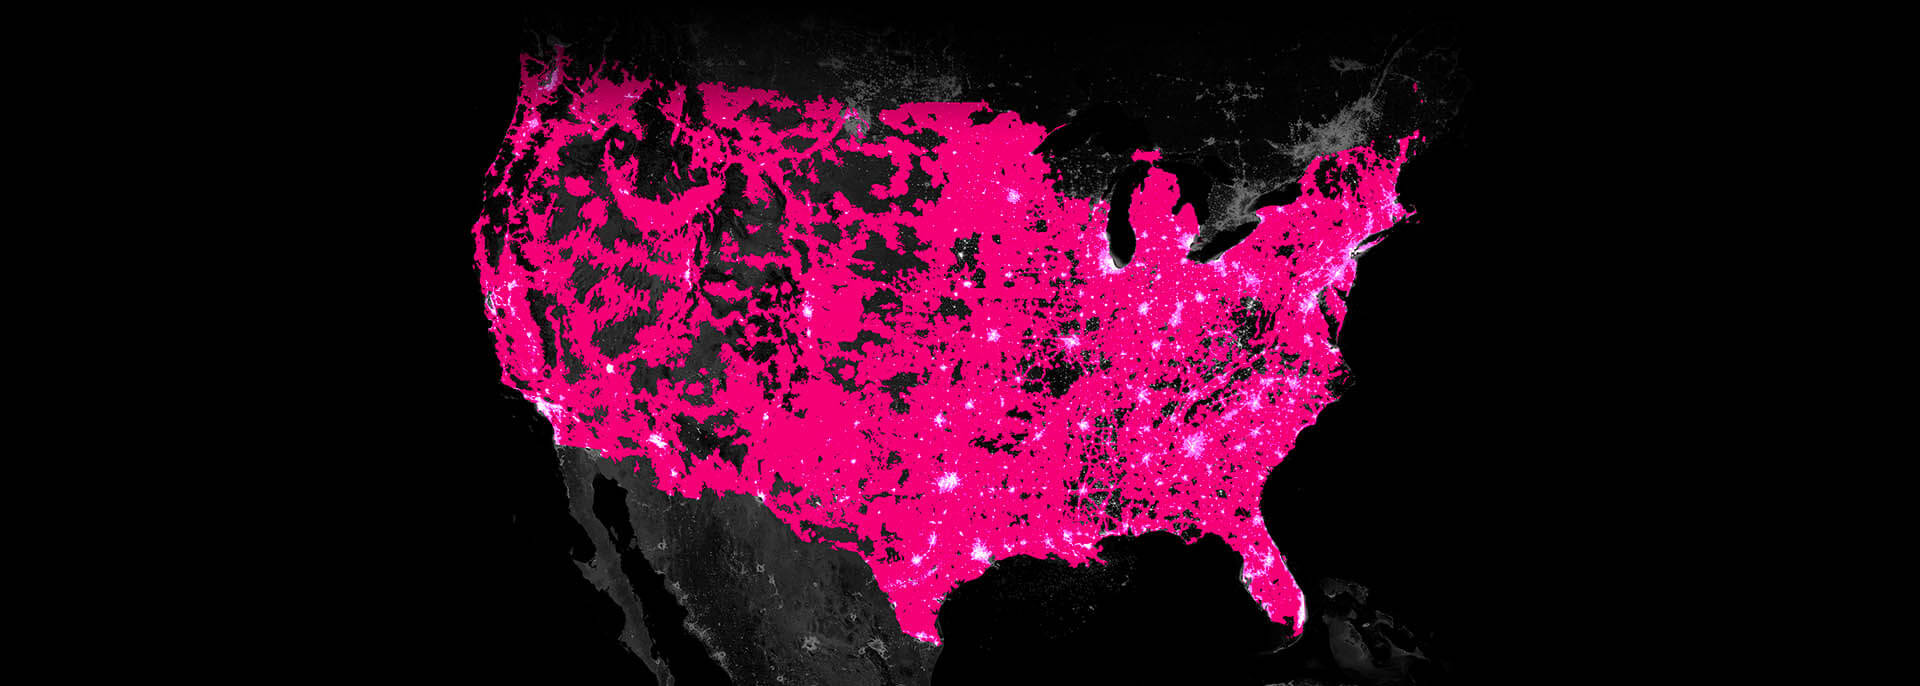 4G LTE Network   4G Network Built for Unlimited Coverage   T Mobile See